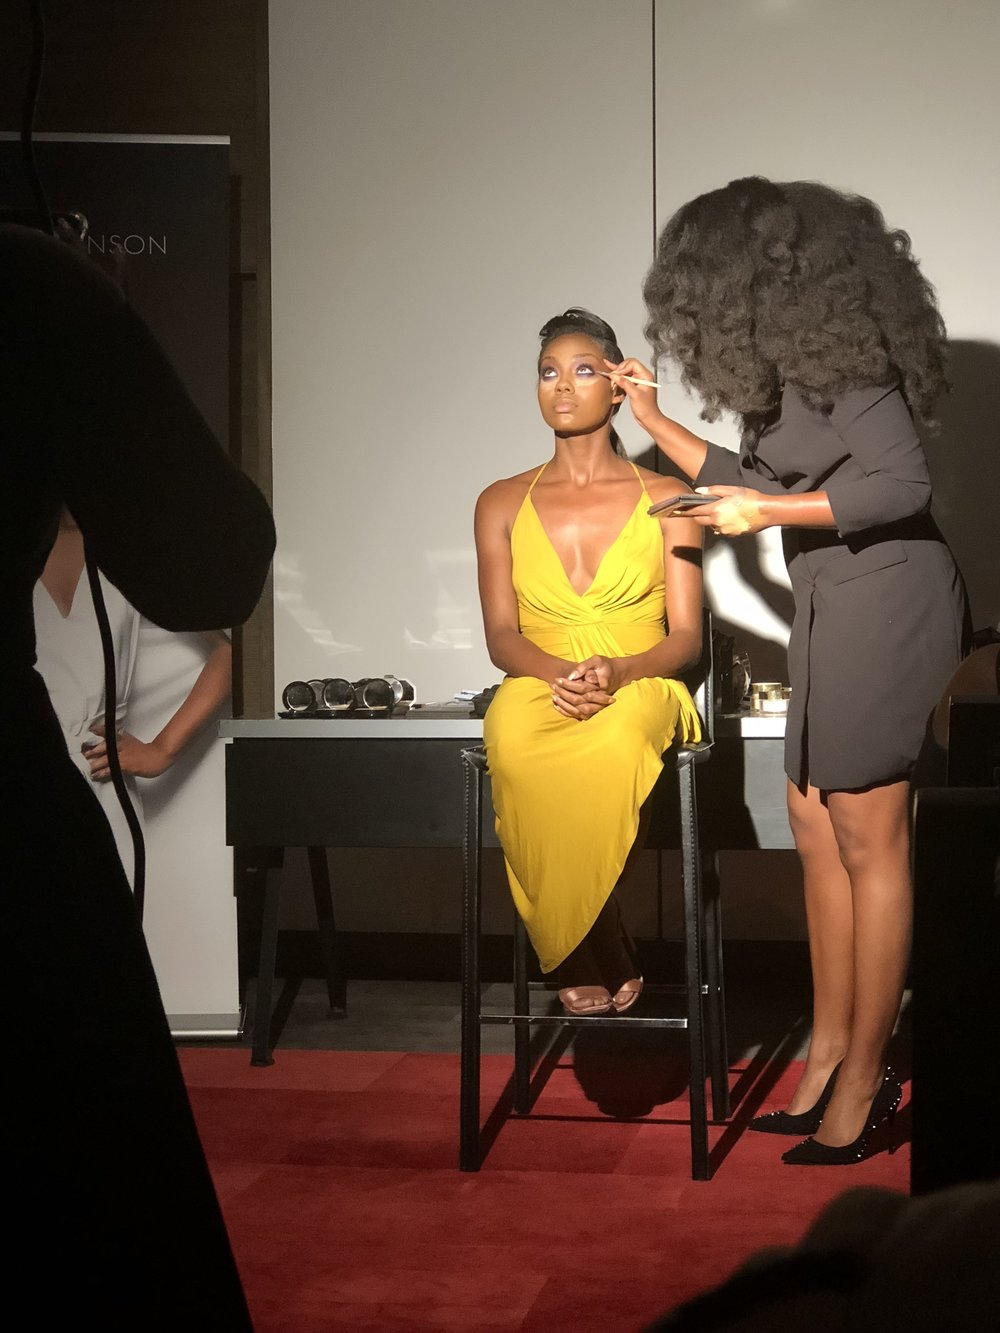 The live demo where Tiyana applies her makeup techniques on her model.